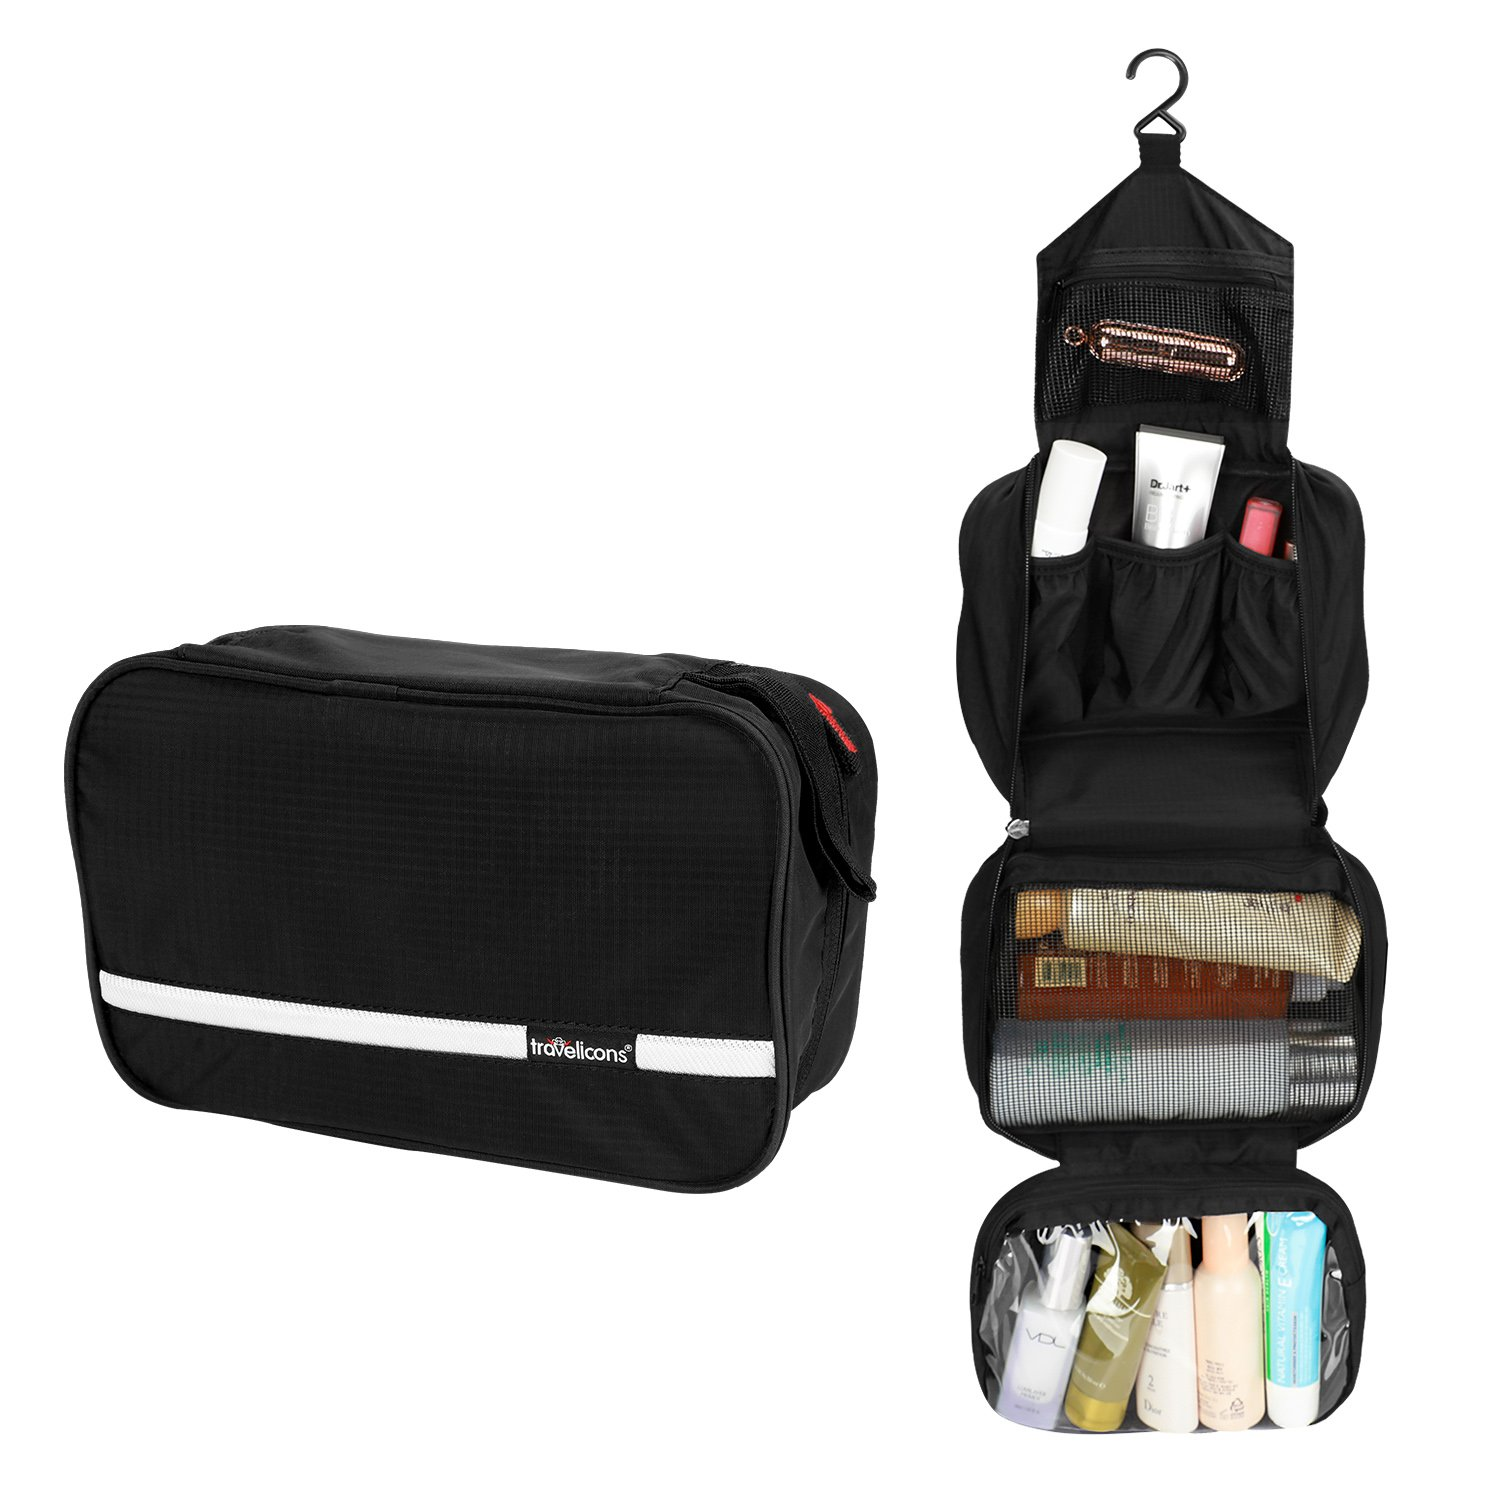 Coisum Hanging Travel Toiletry Bag for Men and Women | Foldable Waterproof Cosmetics Makeups Toiletries Organizer | Portable Travel Bag for Toiletries | 6.8L Sufficient Capacity (Black)